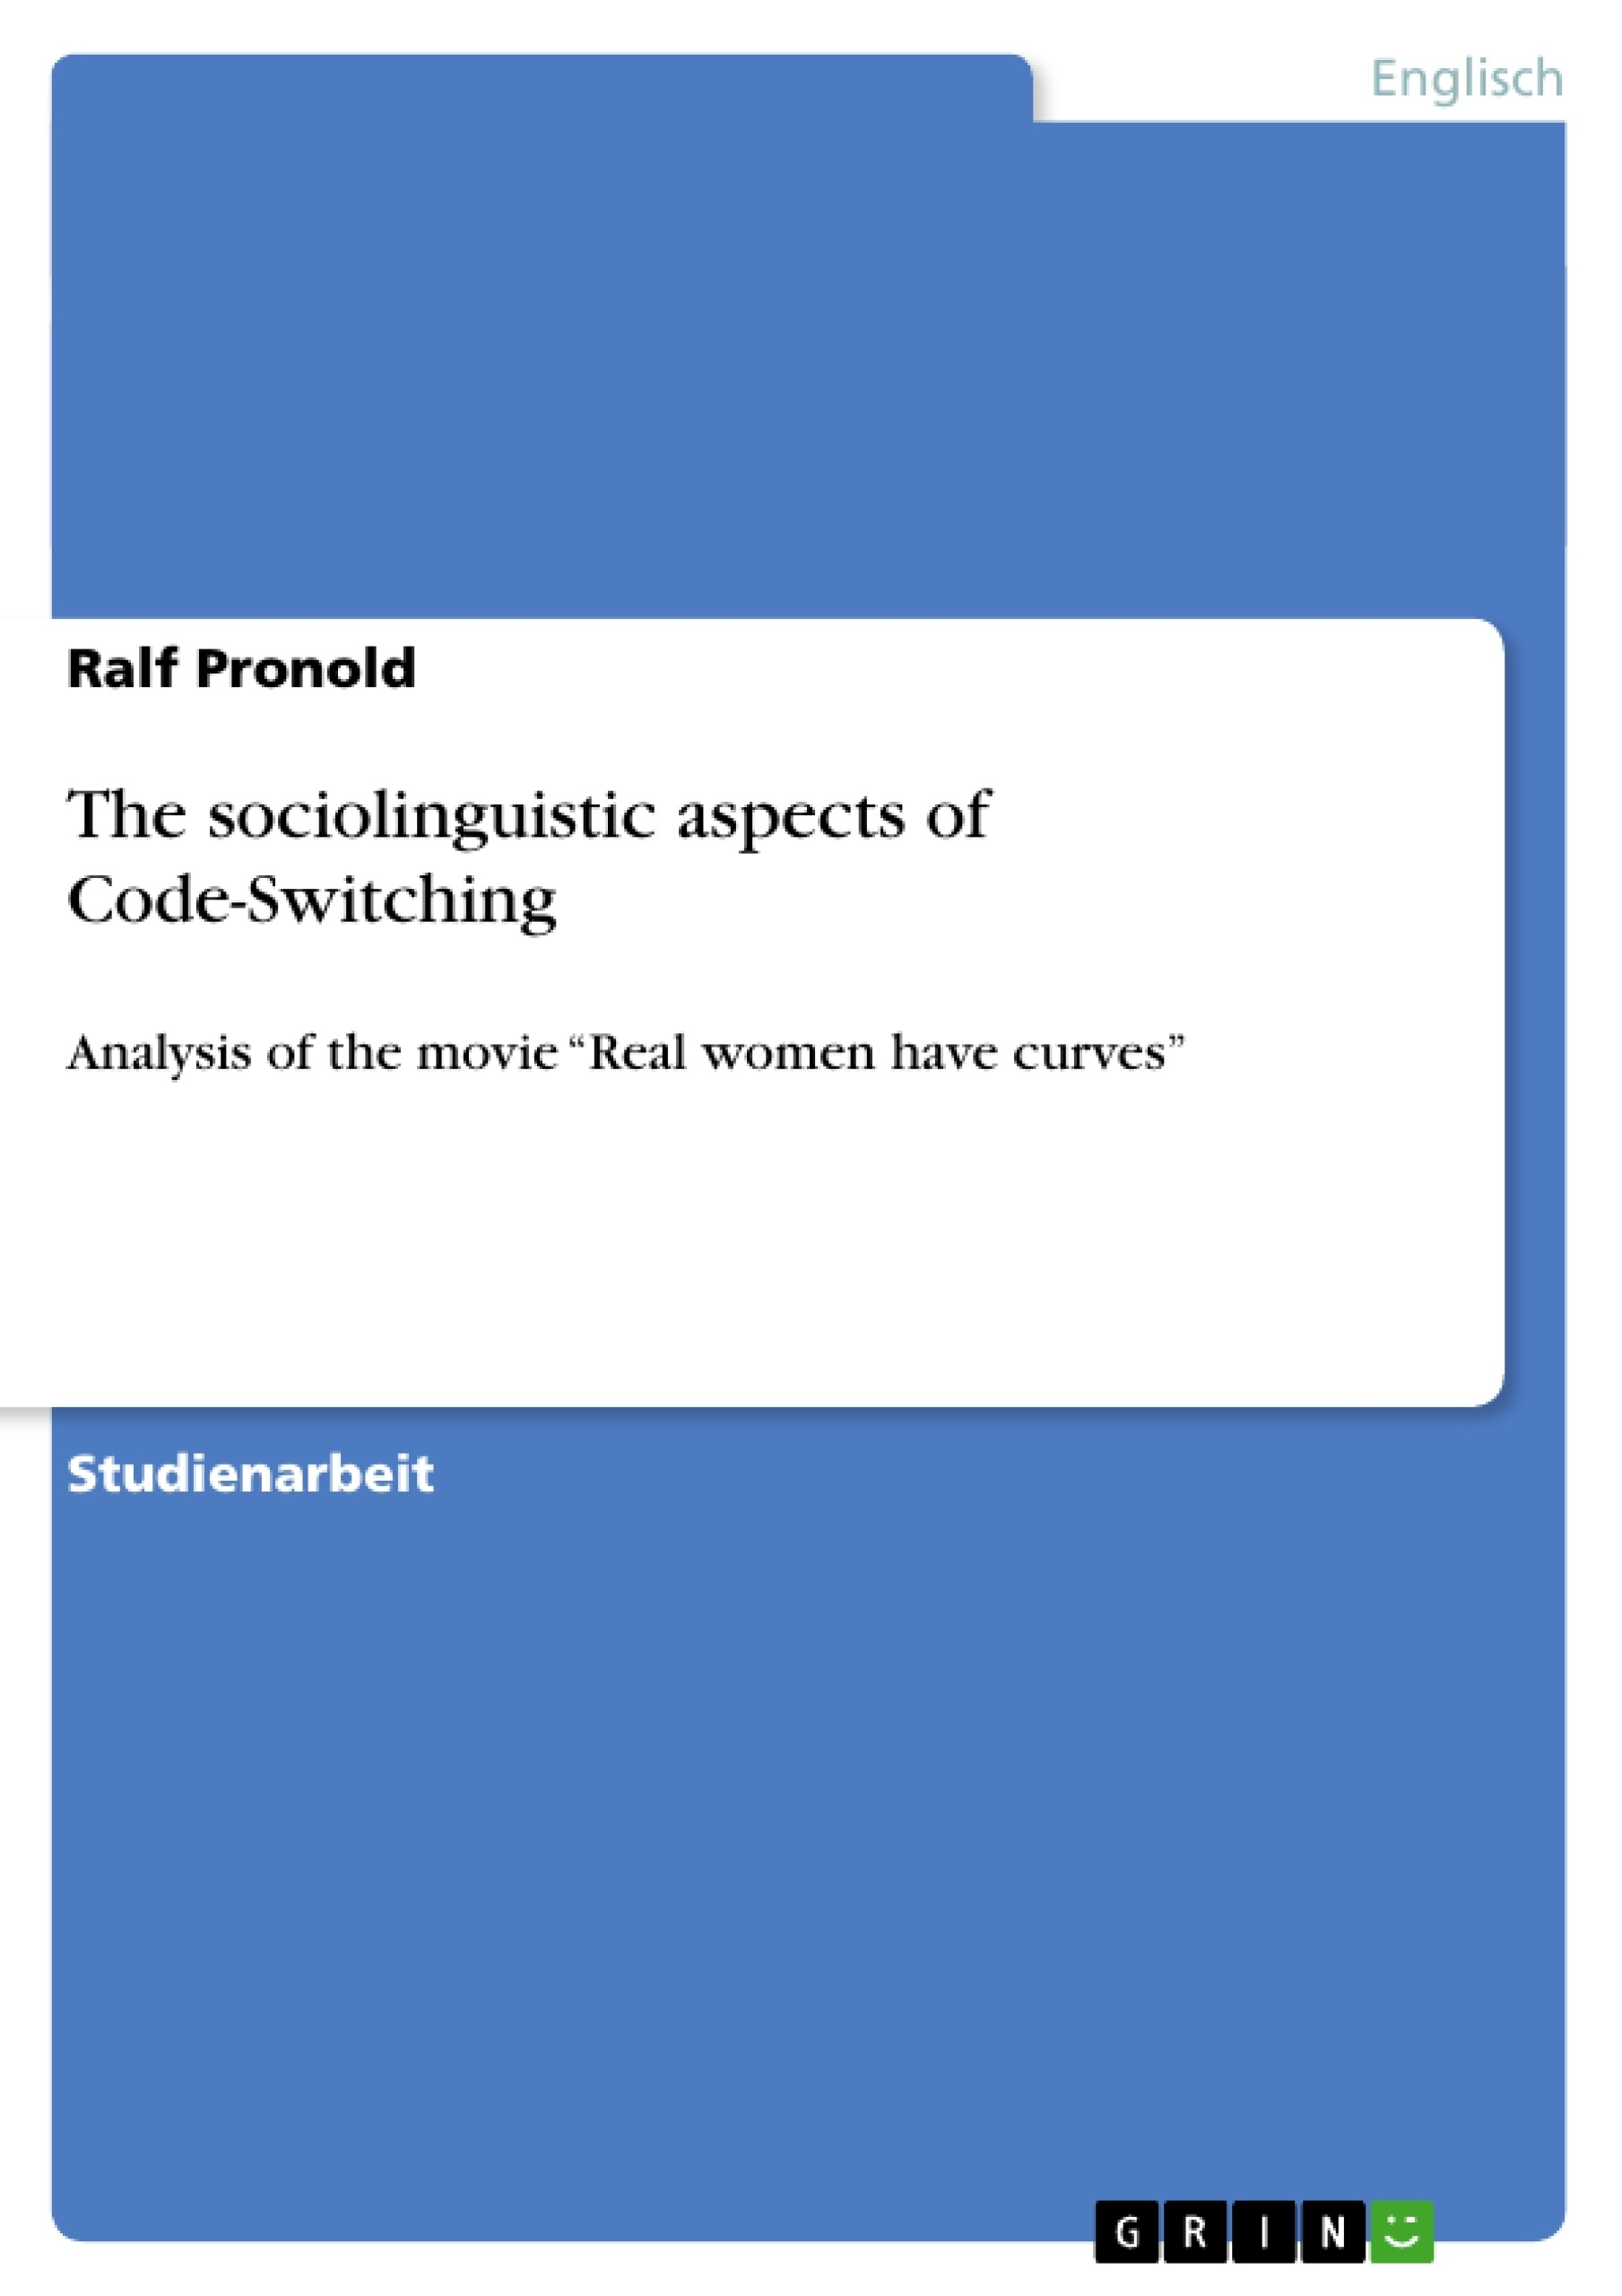 Titel: The sociolinguistic aspects of Code-Switching